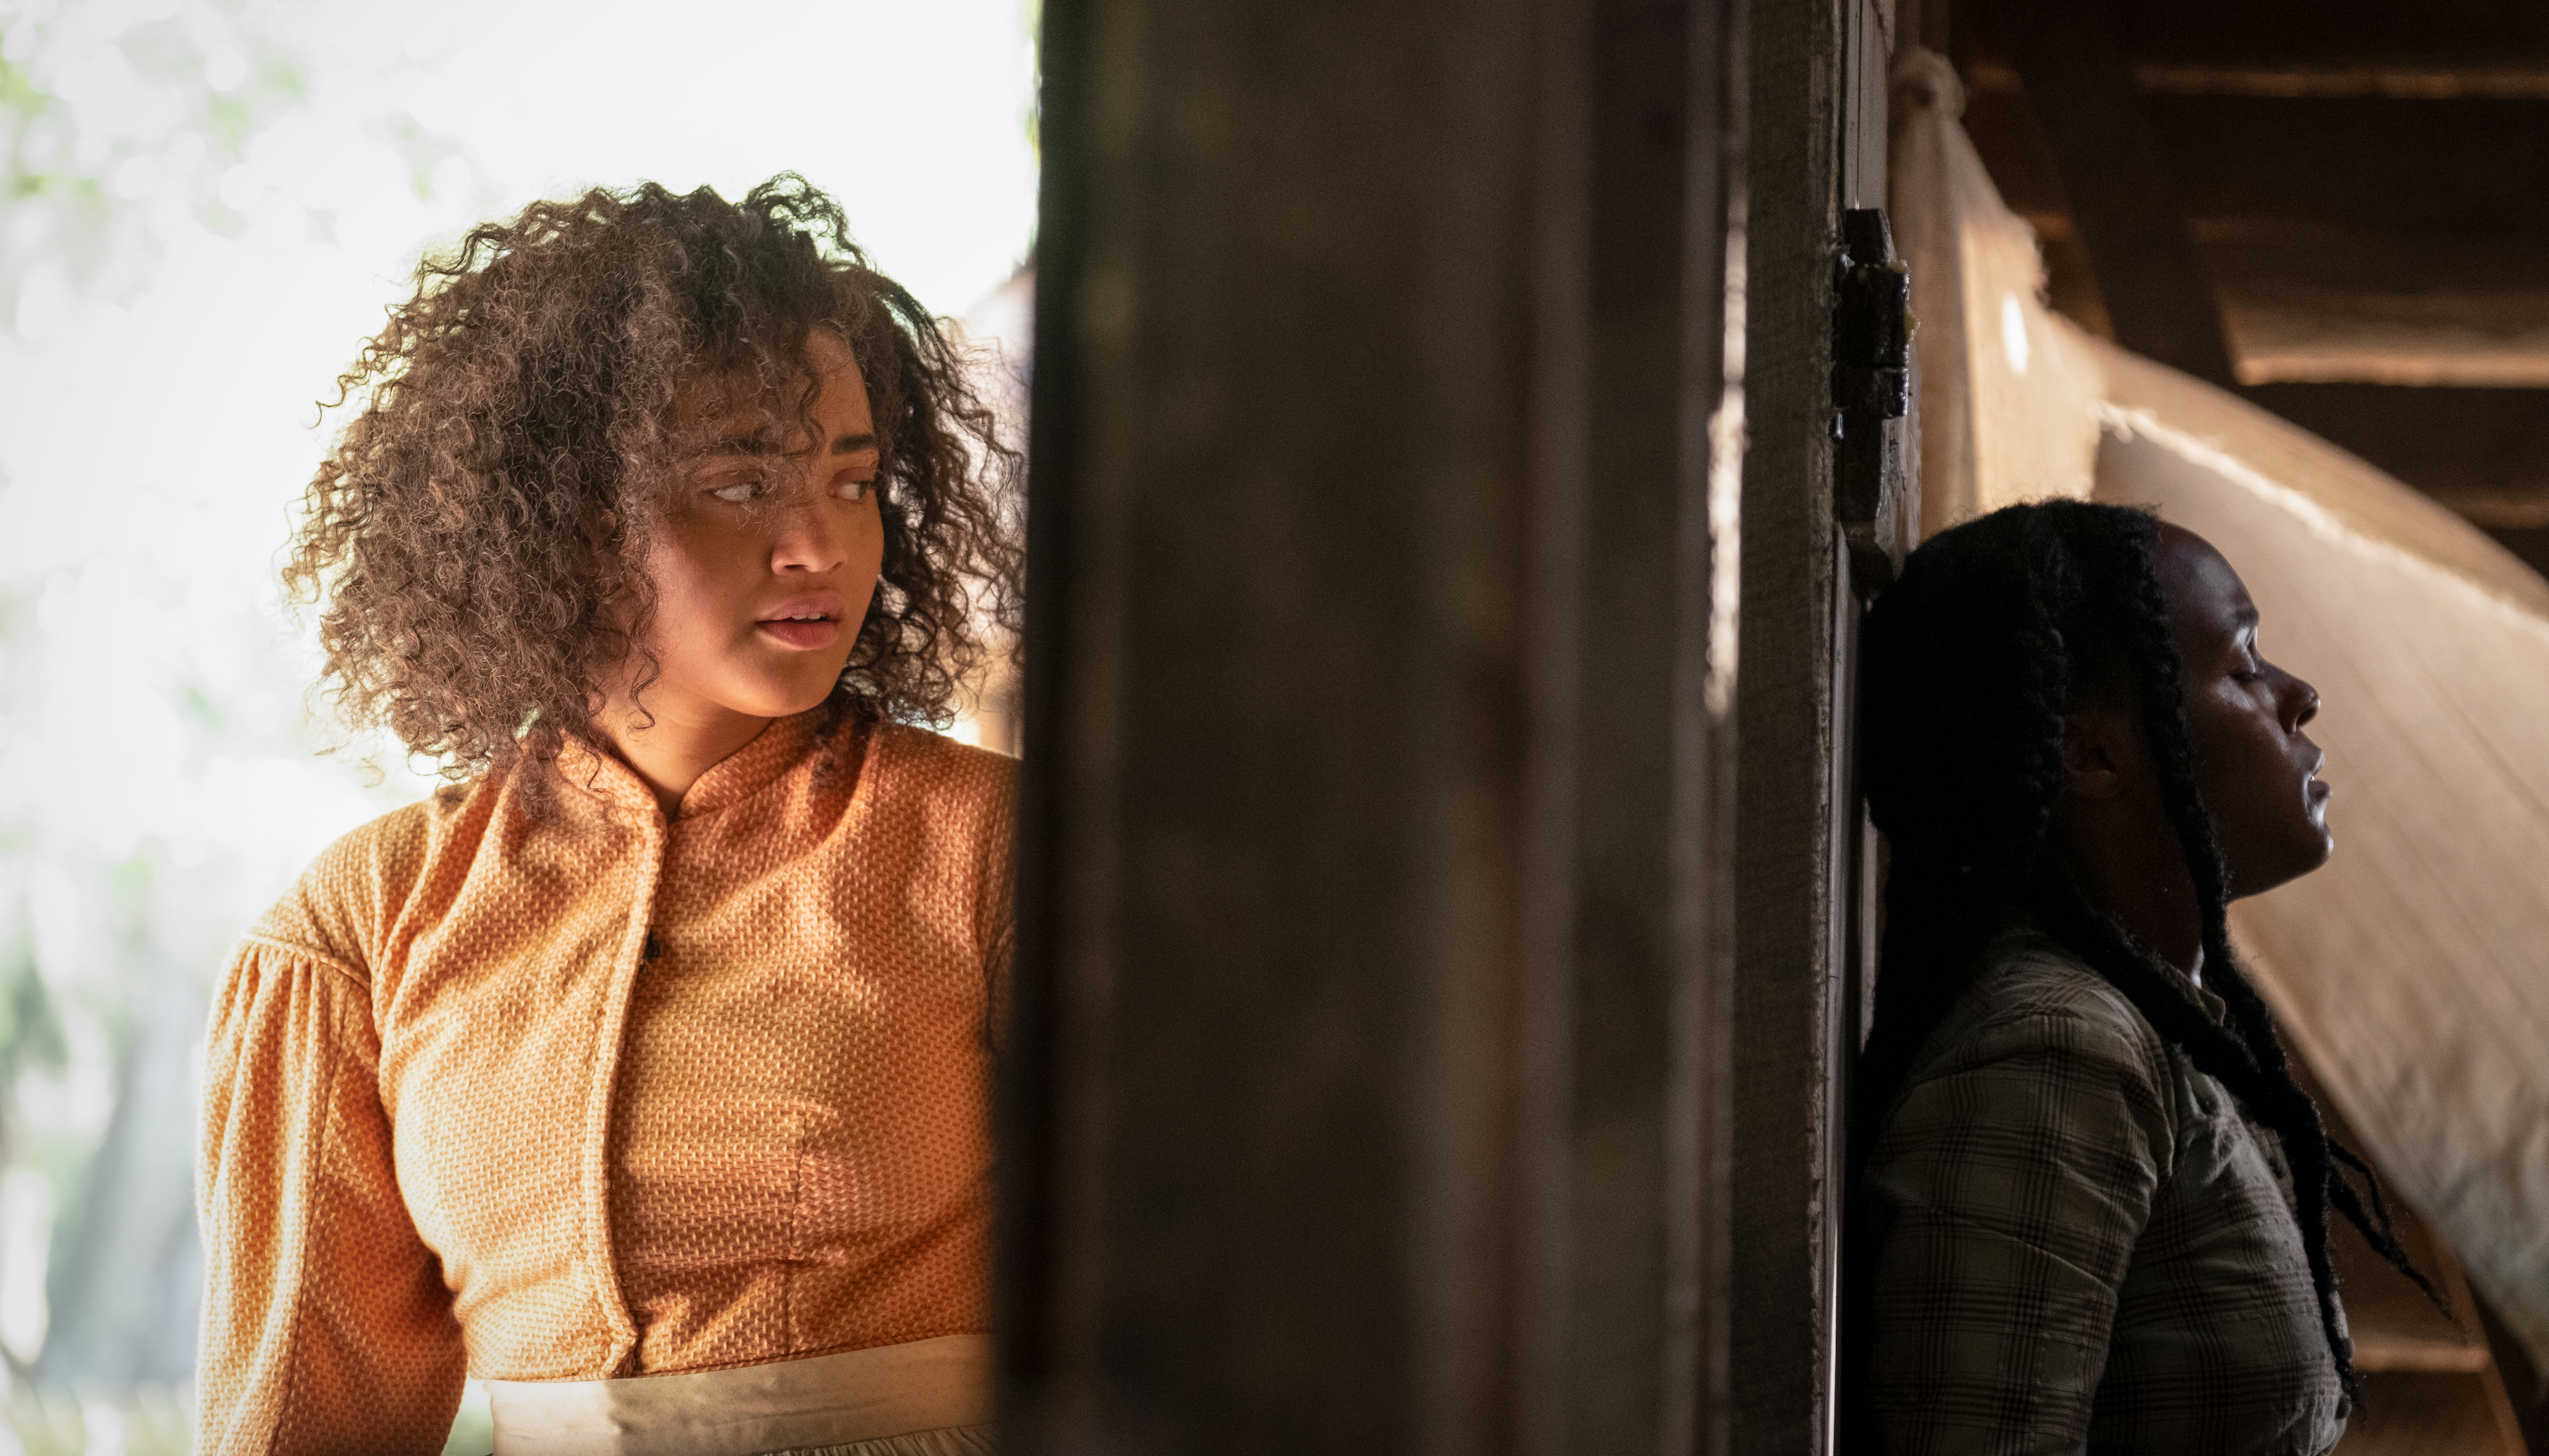 Kiersey Clemons (left) and Janelle Monae (right) in ANTEBELLUM{ }(Image: Lionsgate)